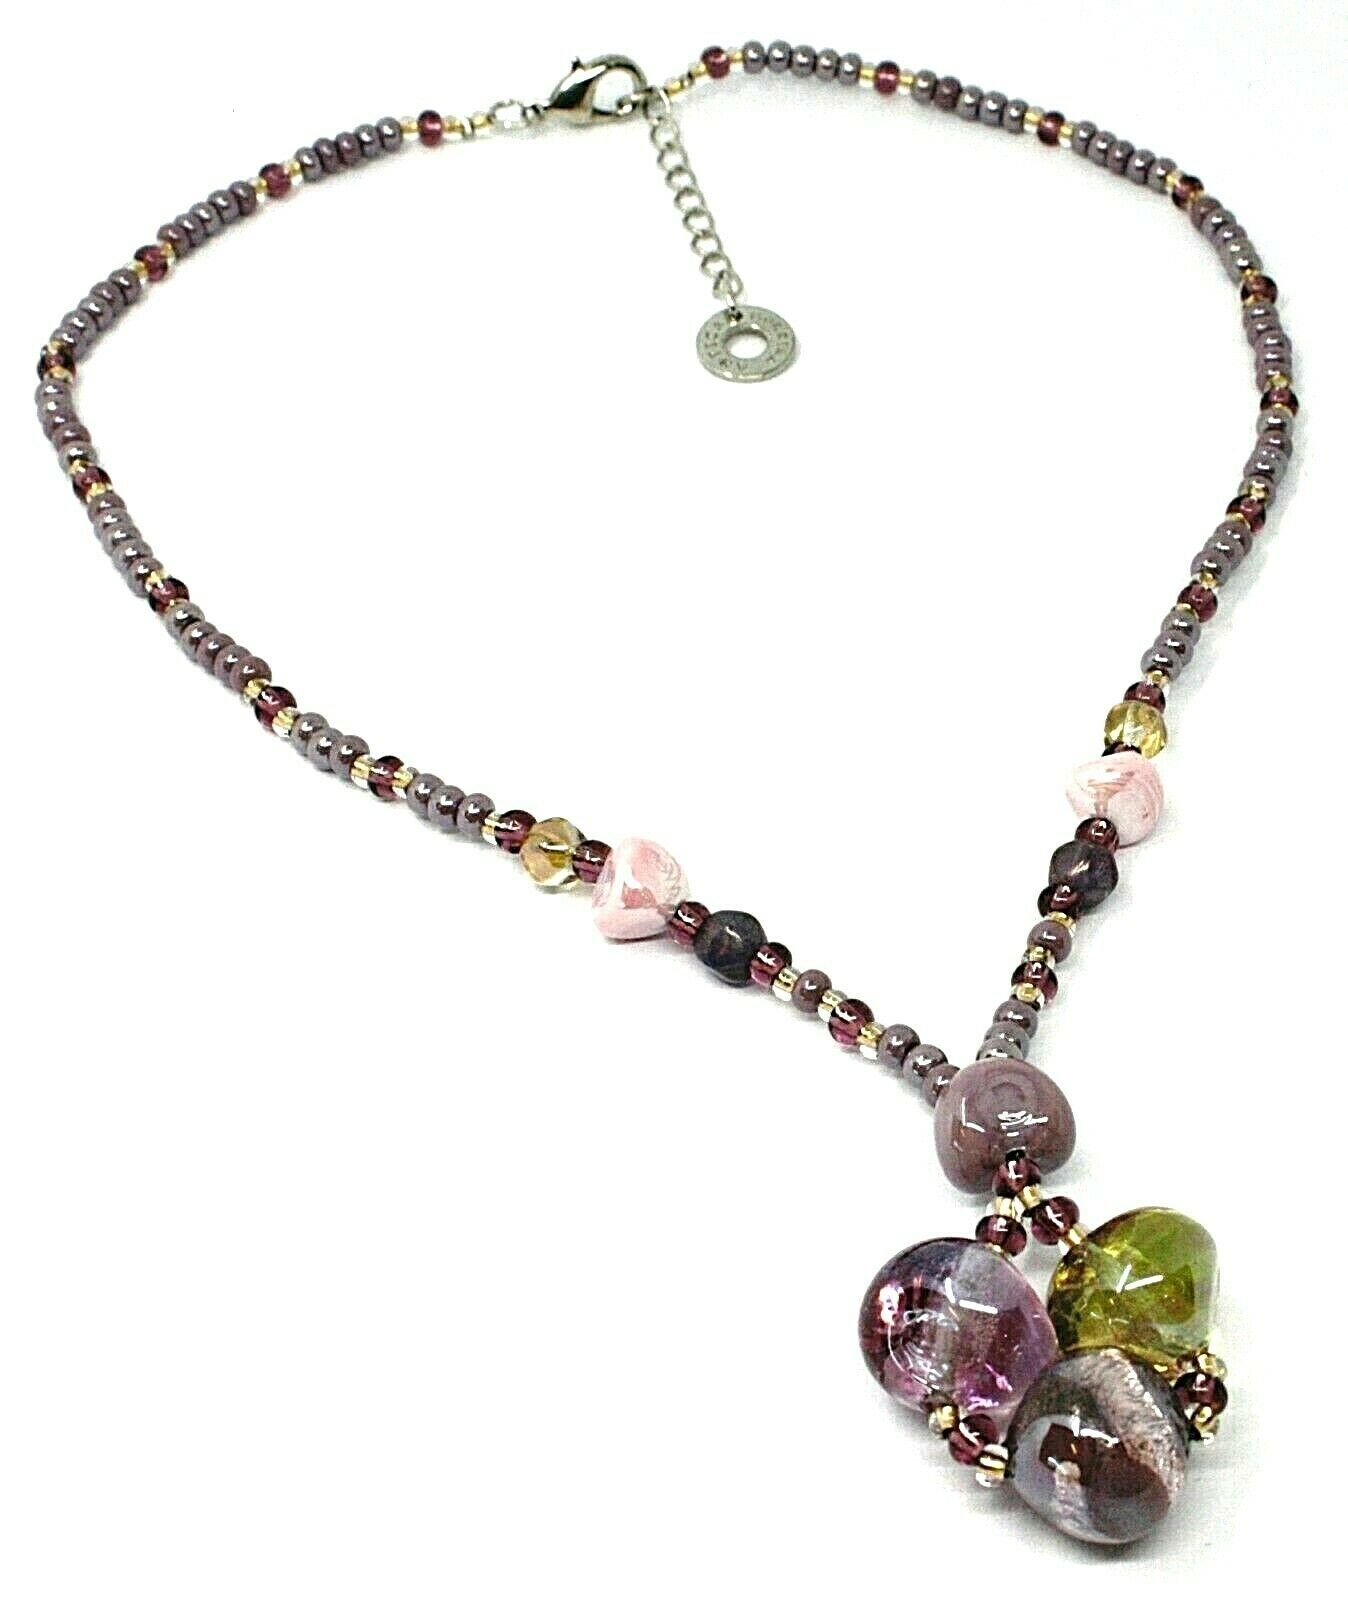 Necklace Antica Murrina Venezia, CO986A05, Nugget Purple Pendant, 17 11/16in,